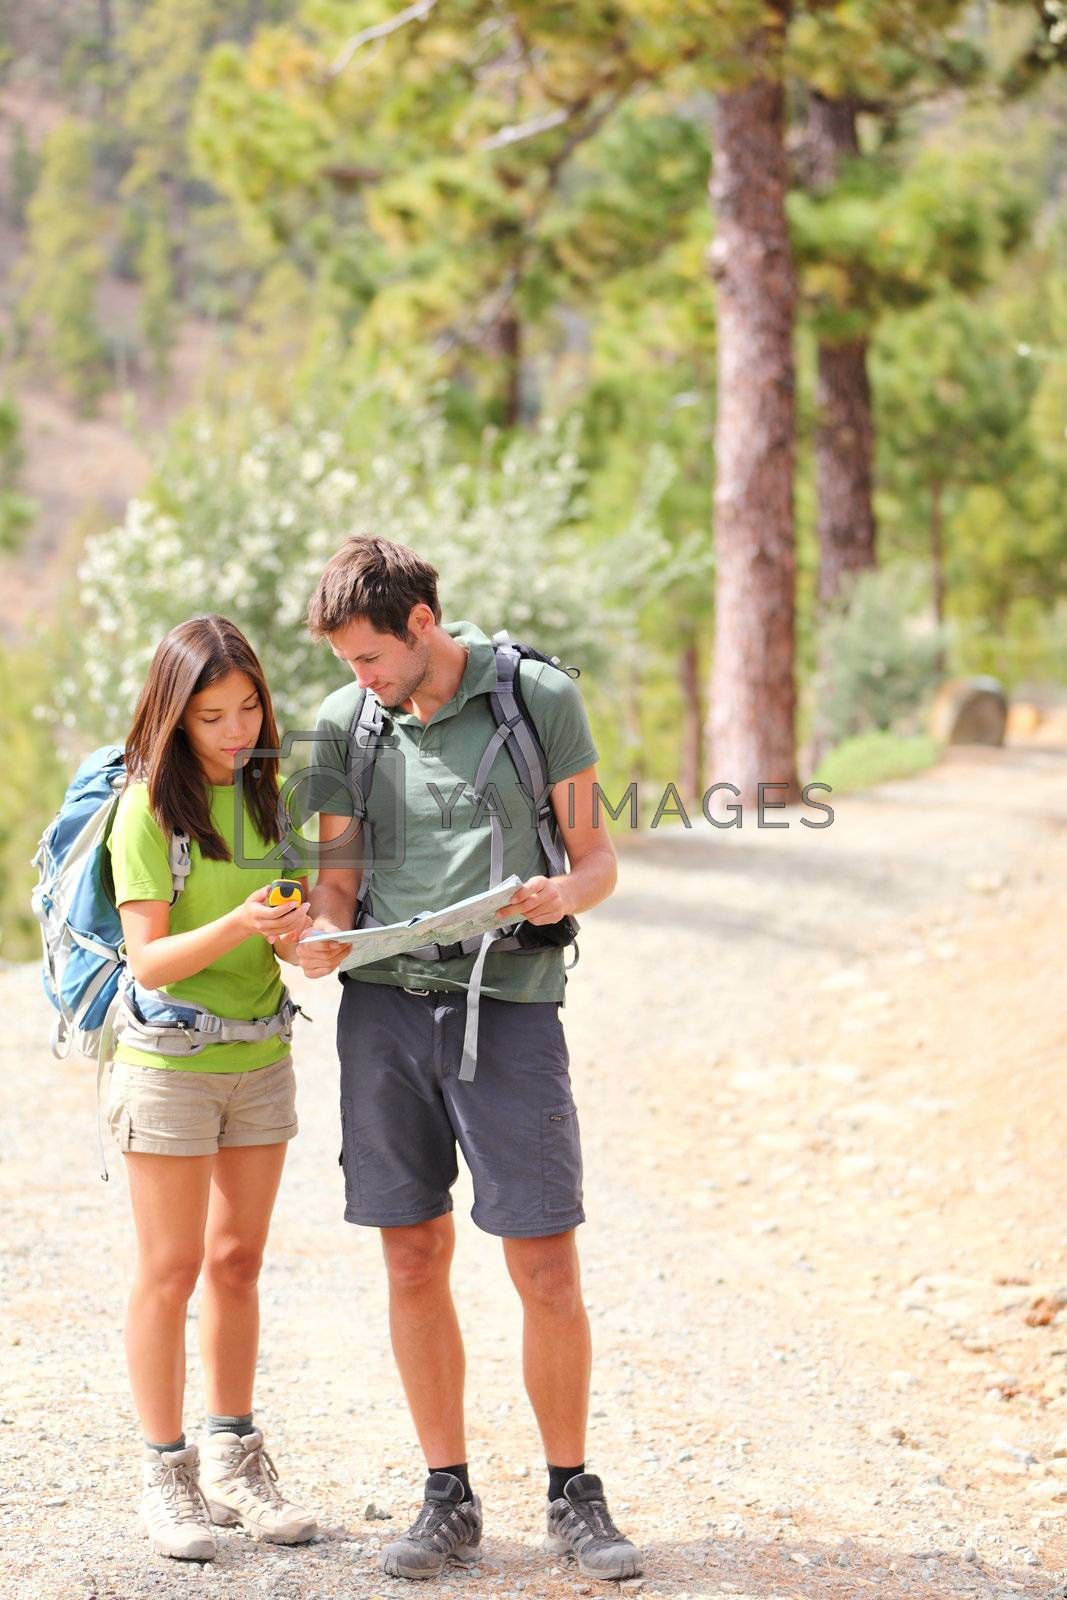 Hikers - hiking couple looking at map using GPS to navigate during camping travel hike. Young Caucasian man and Asian woman.